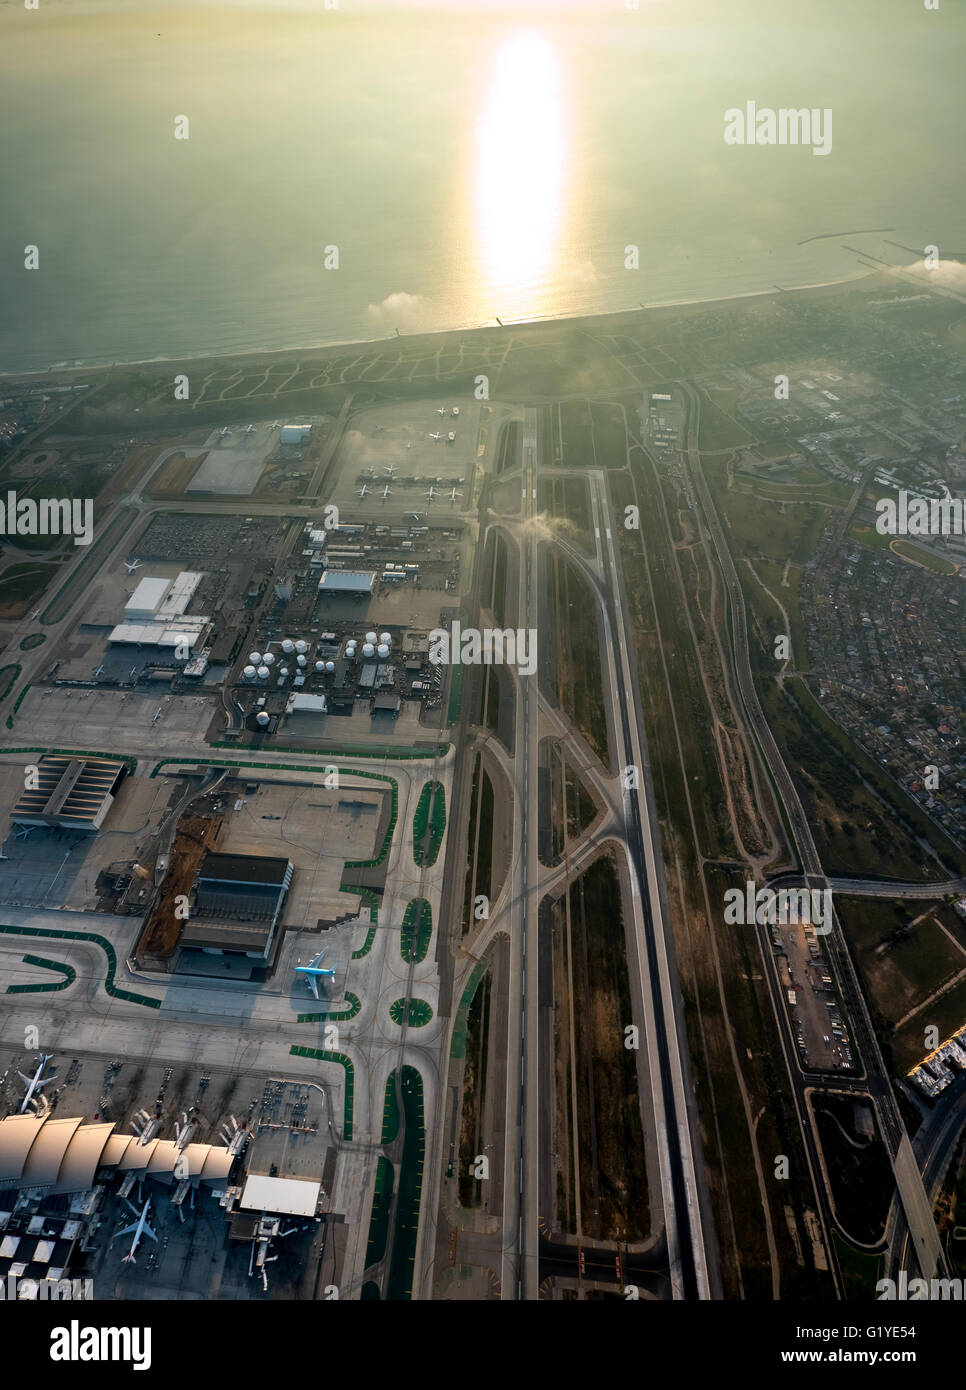 Los Angeles International Airport, LAX, runway, Los Angeles, Los Angeles County, California, USA - Stock Image